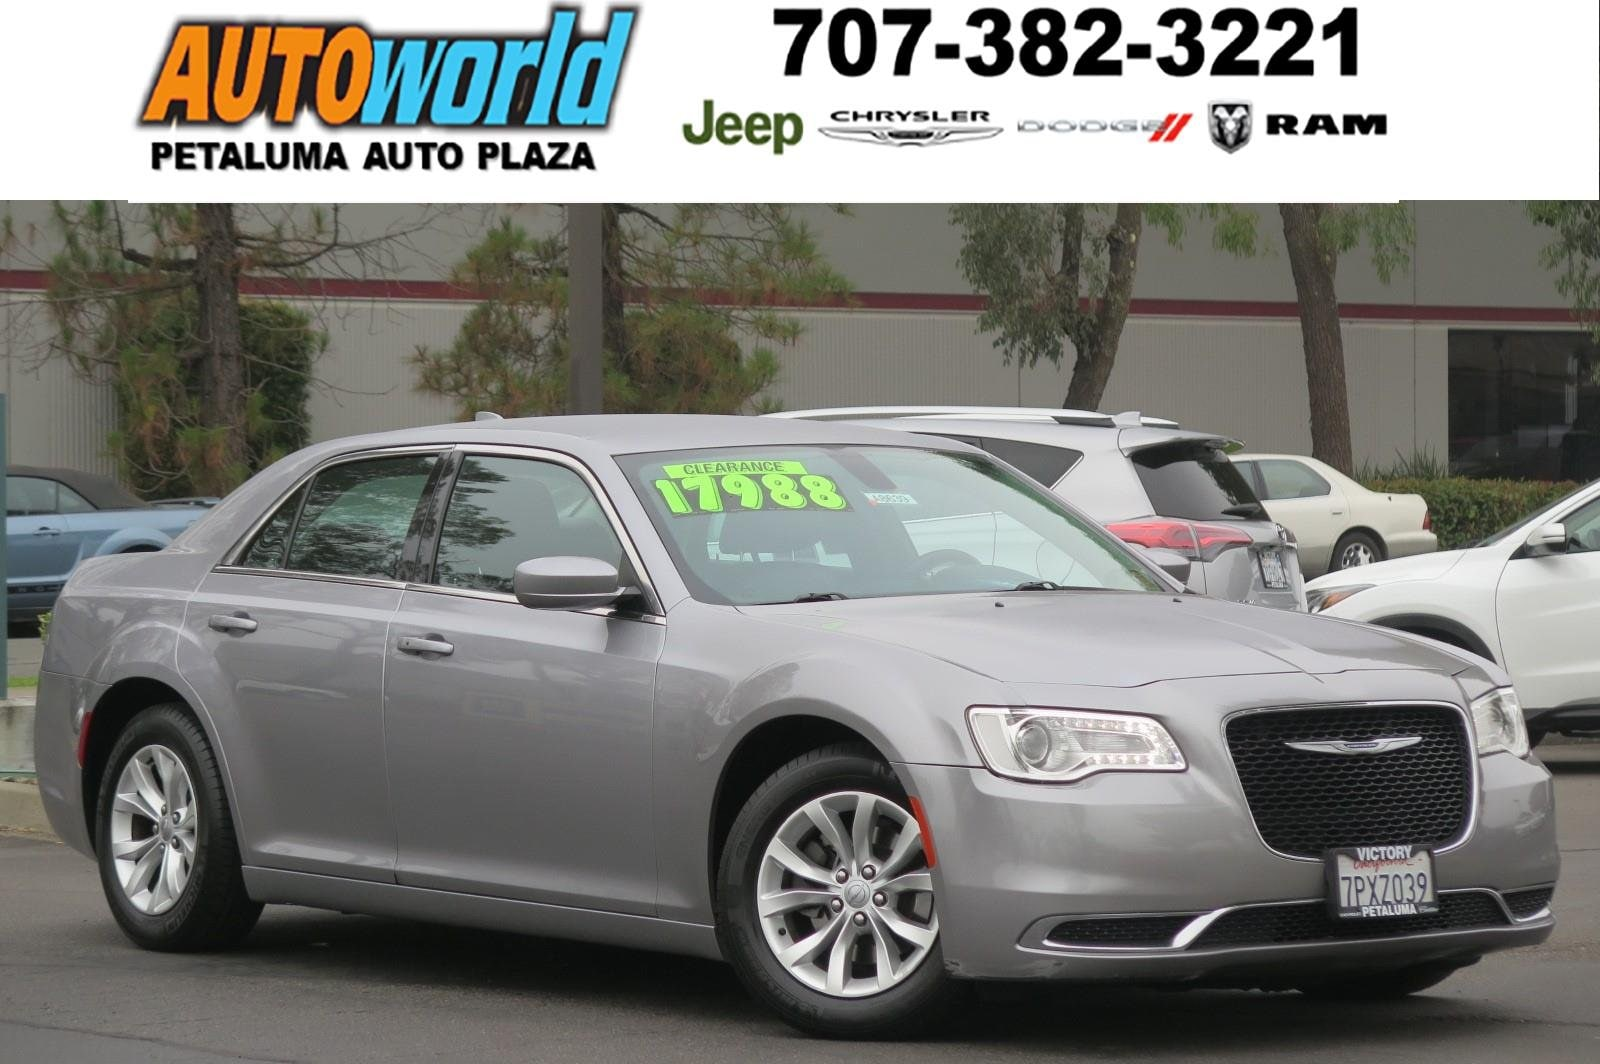 2016 Chrysler 300 Sedan